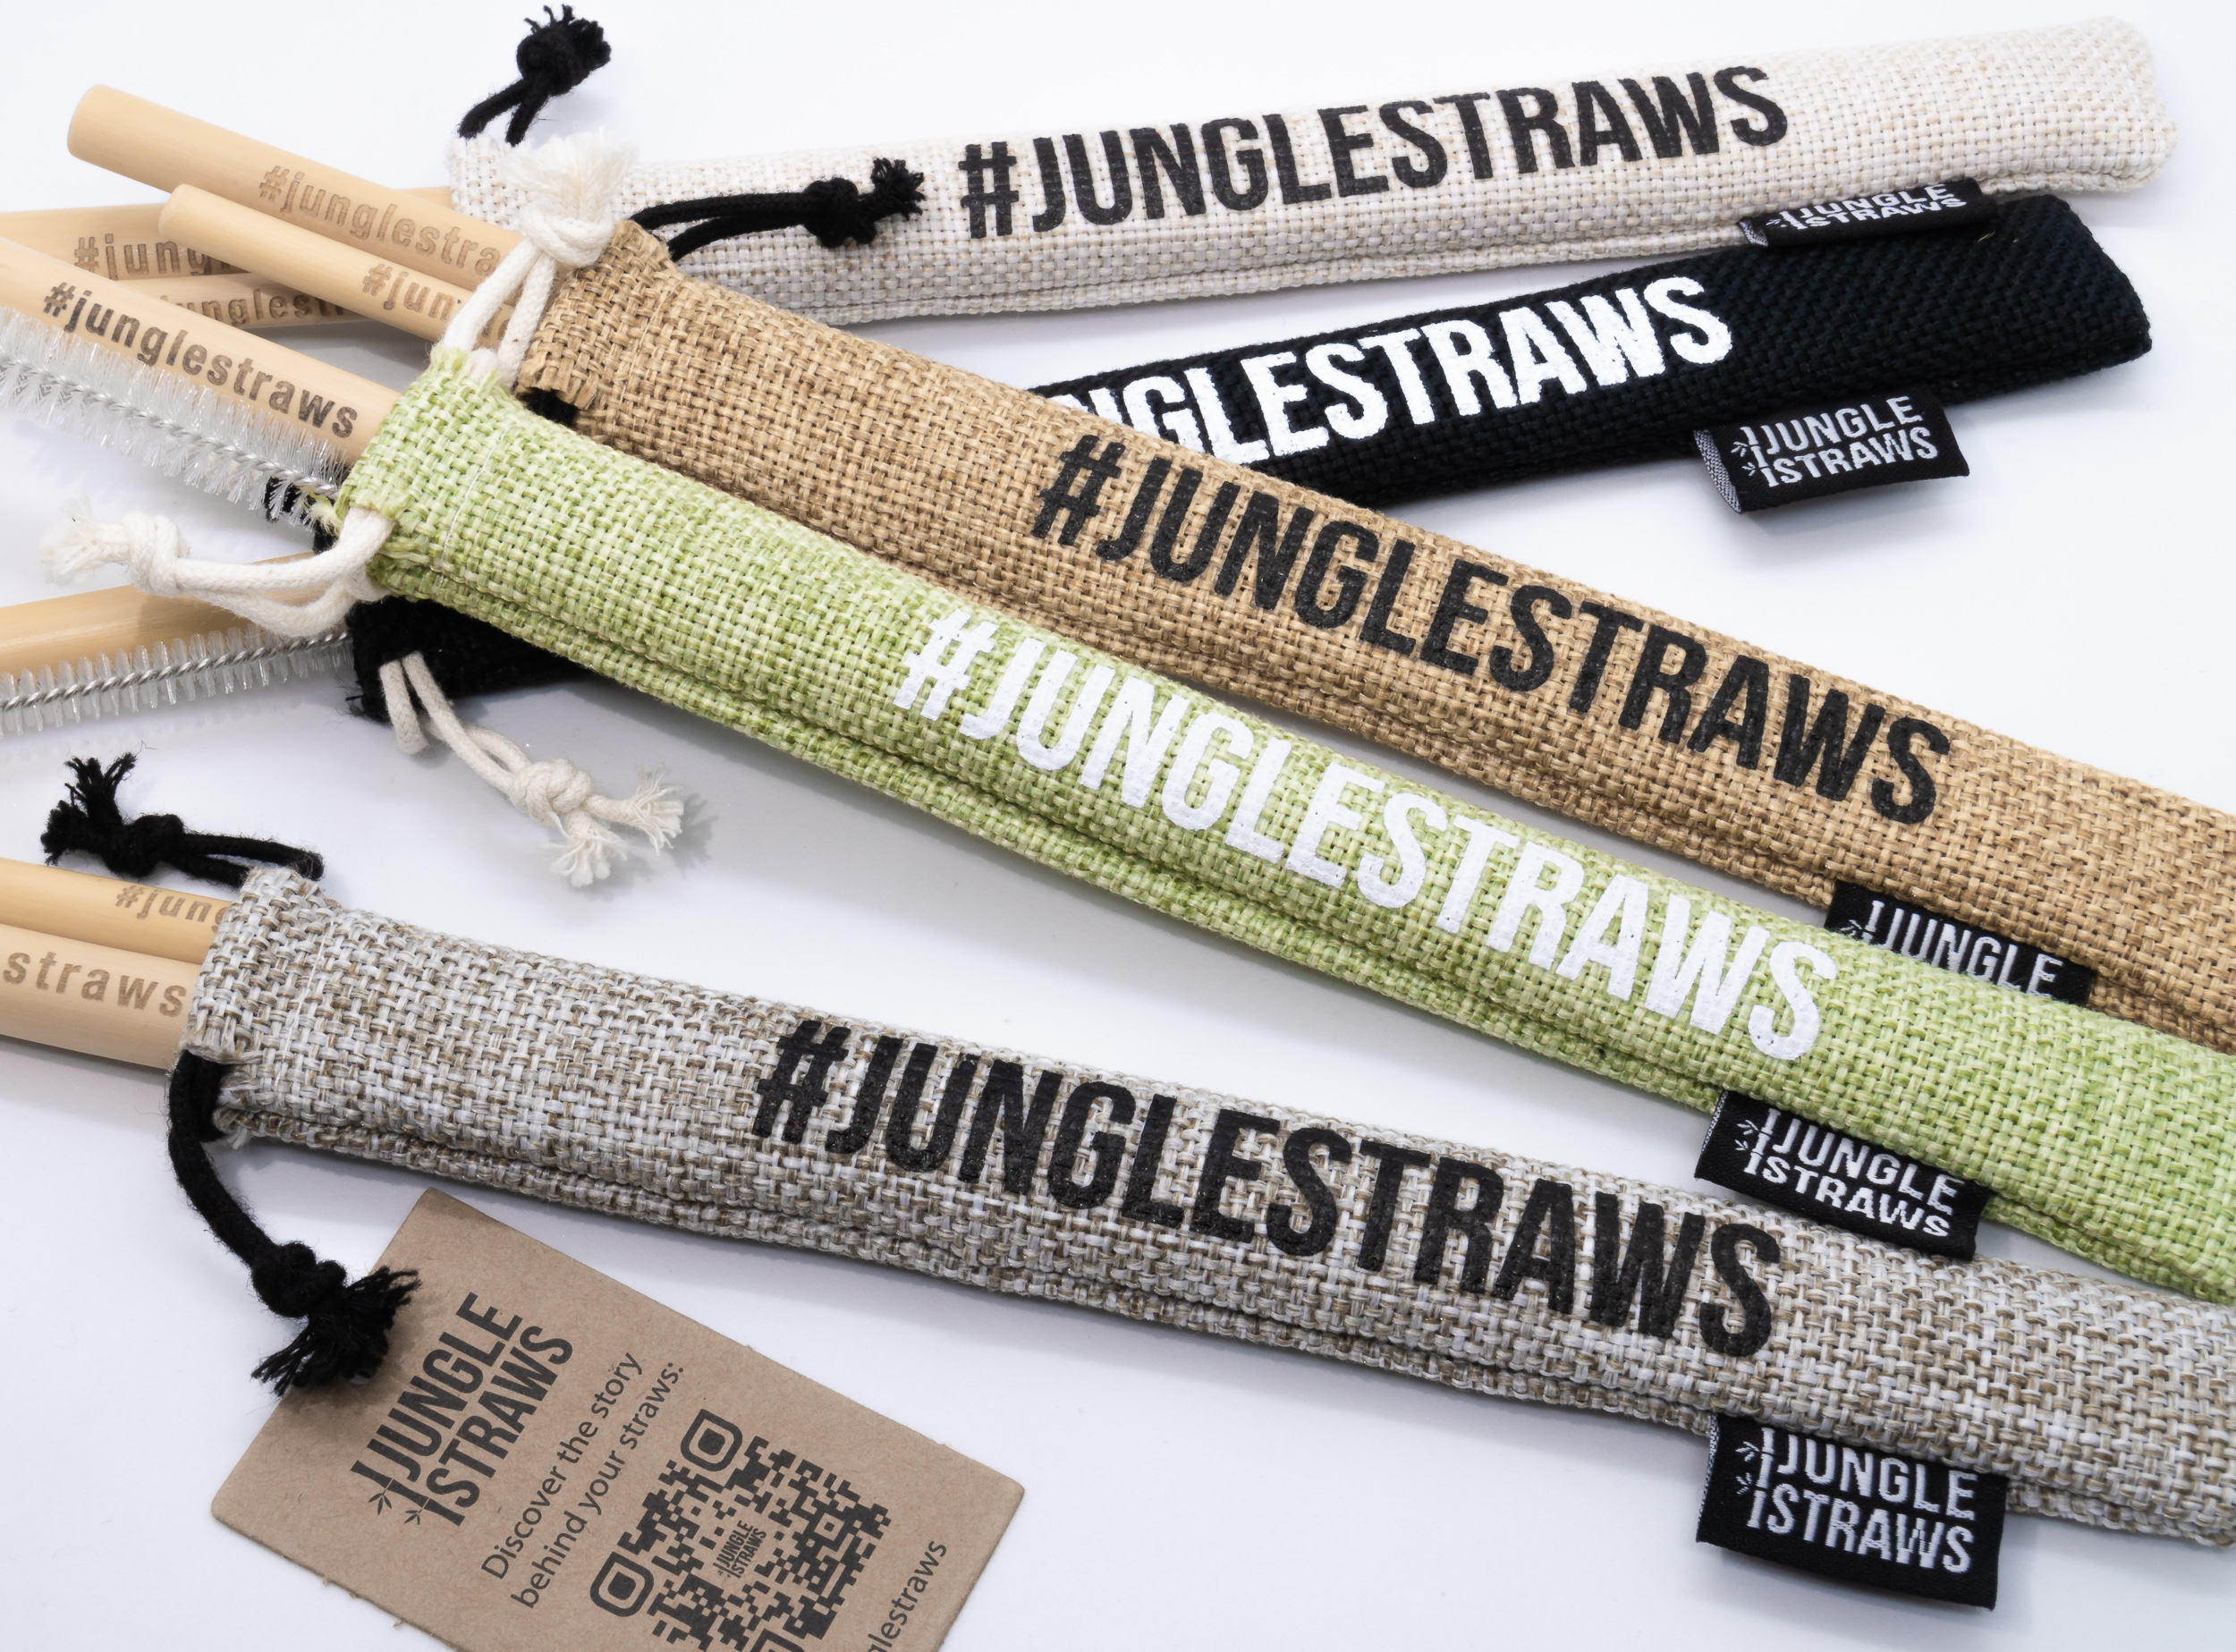 Jungle-Straws-Single-Straw-Holder-Zero-Waste-Essentials-Kit.jpg